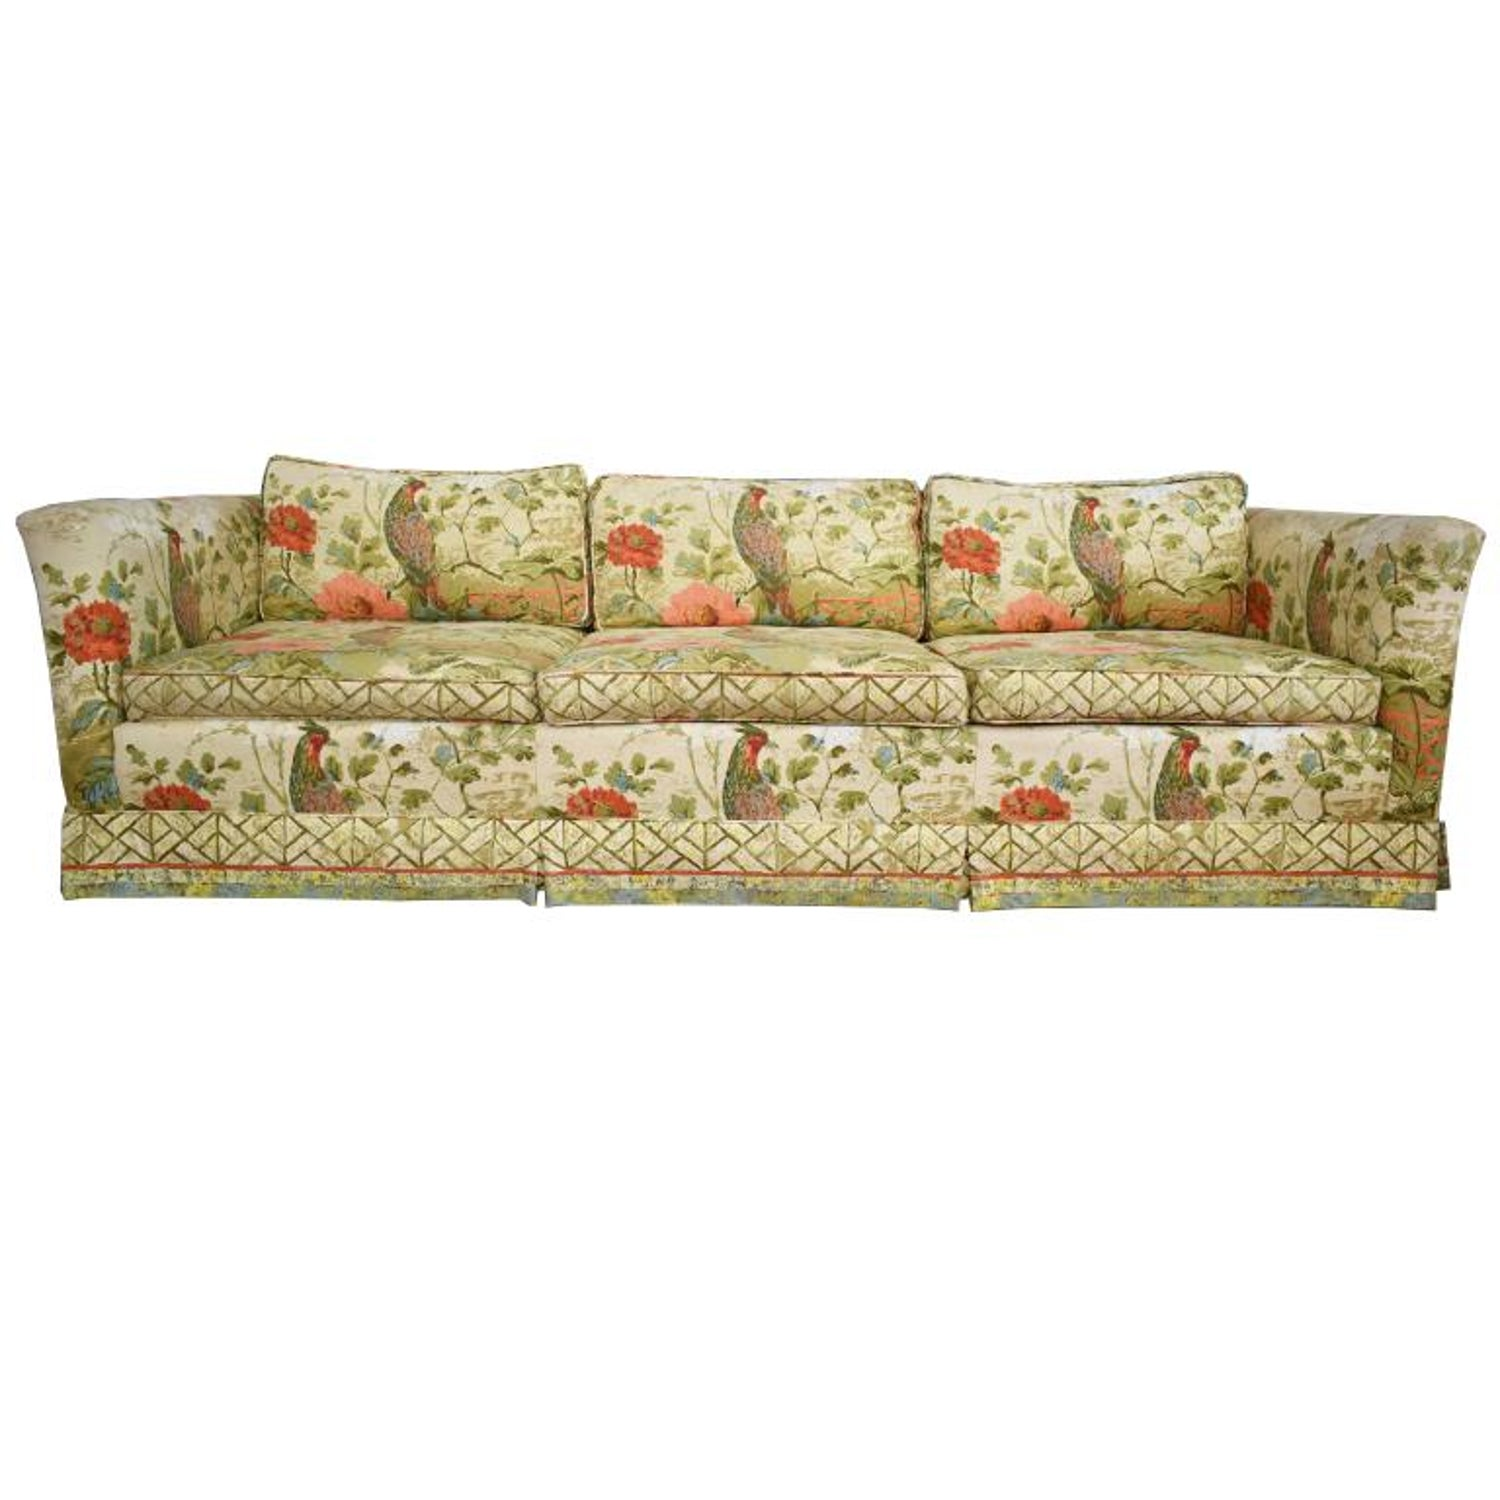 Ethan Allen Floral Chinoiserie Down Filled Peacock Sofa With Low